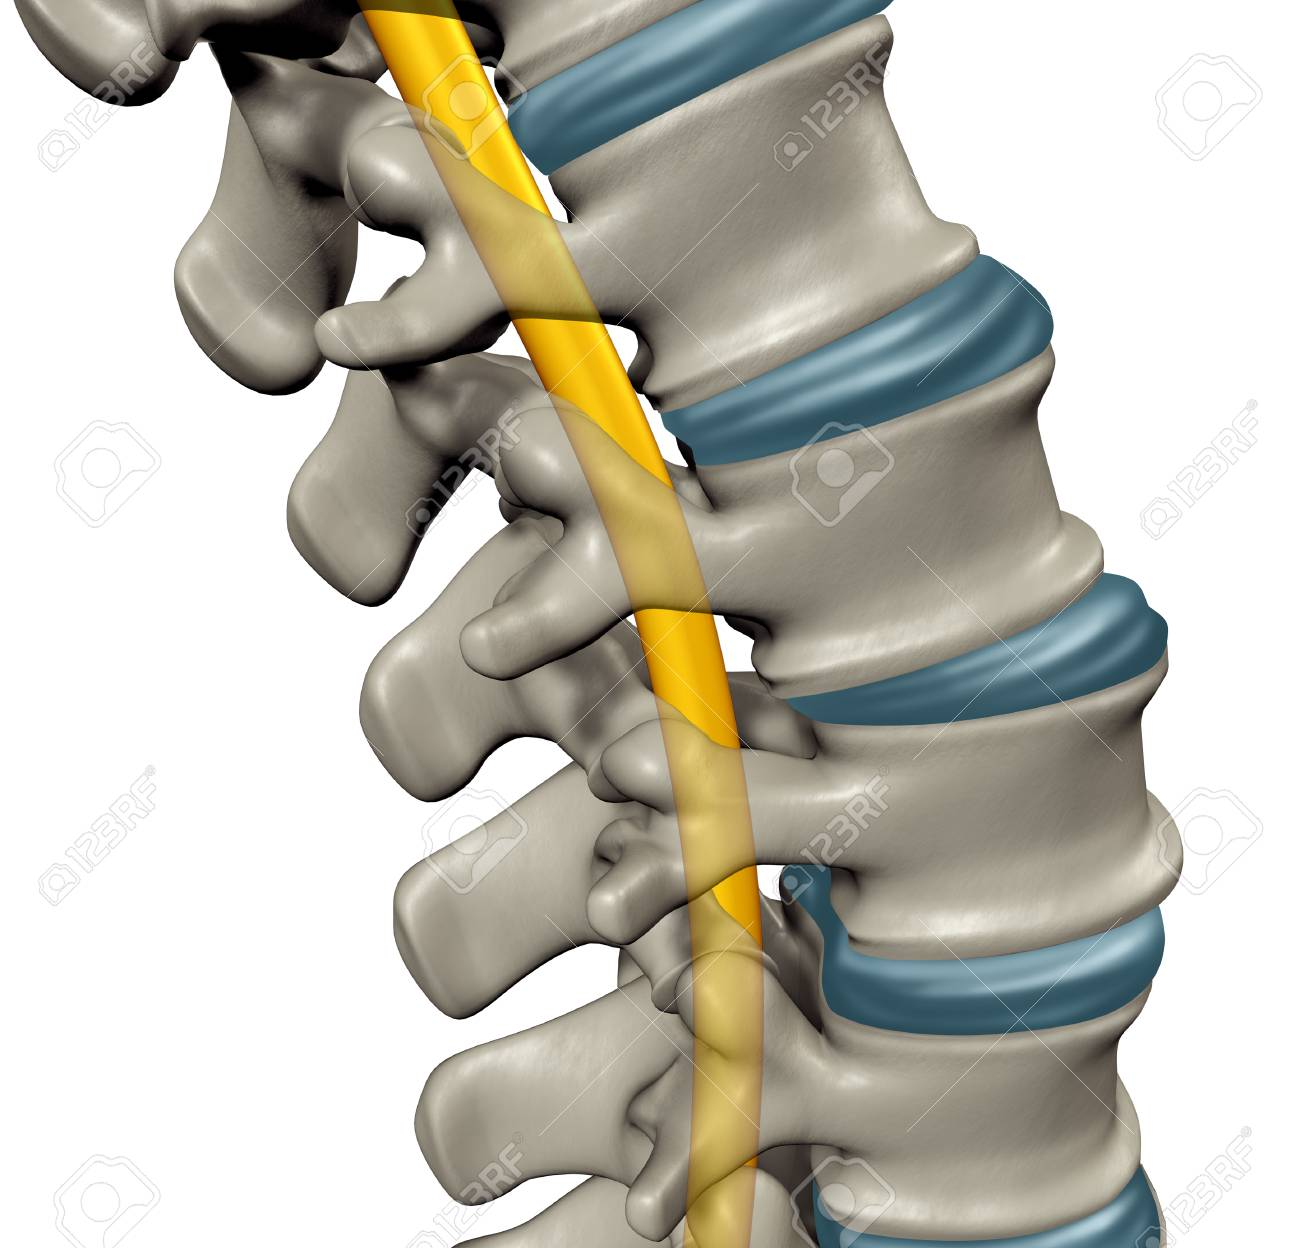 Spinal Cord Anatomy Concept As A Medical Symbol For The Human ...